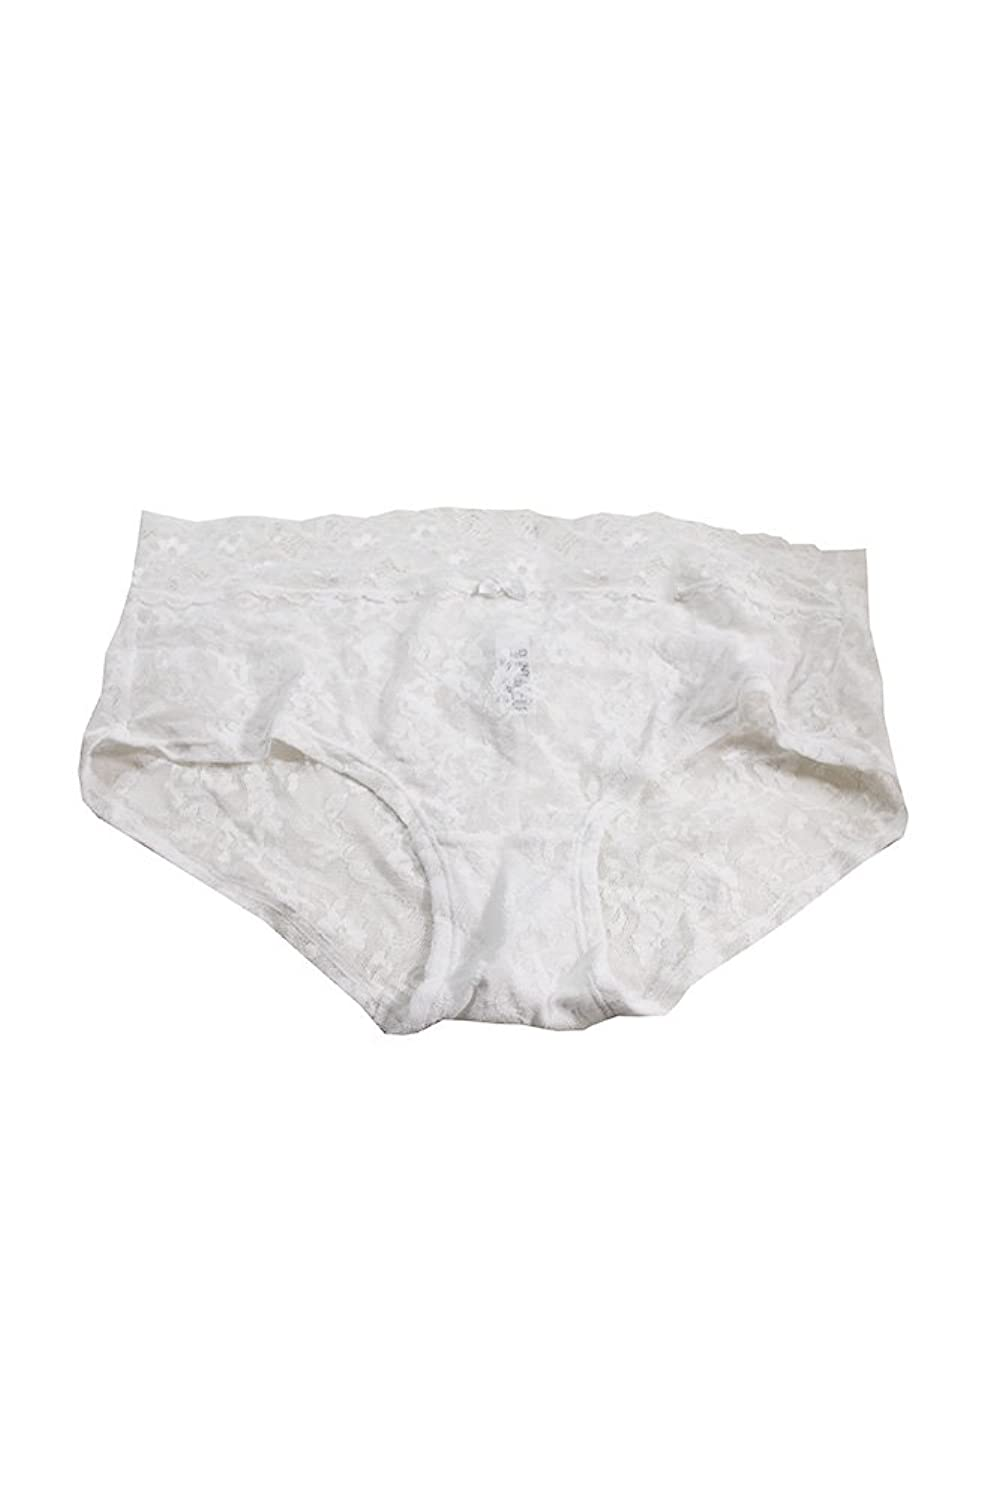 DKNY Signature White Lace Boyshort L